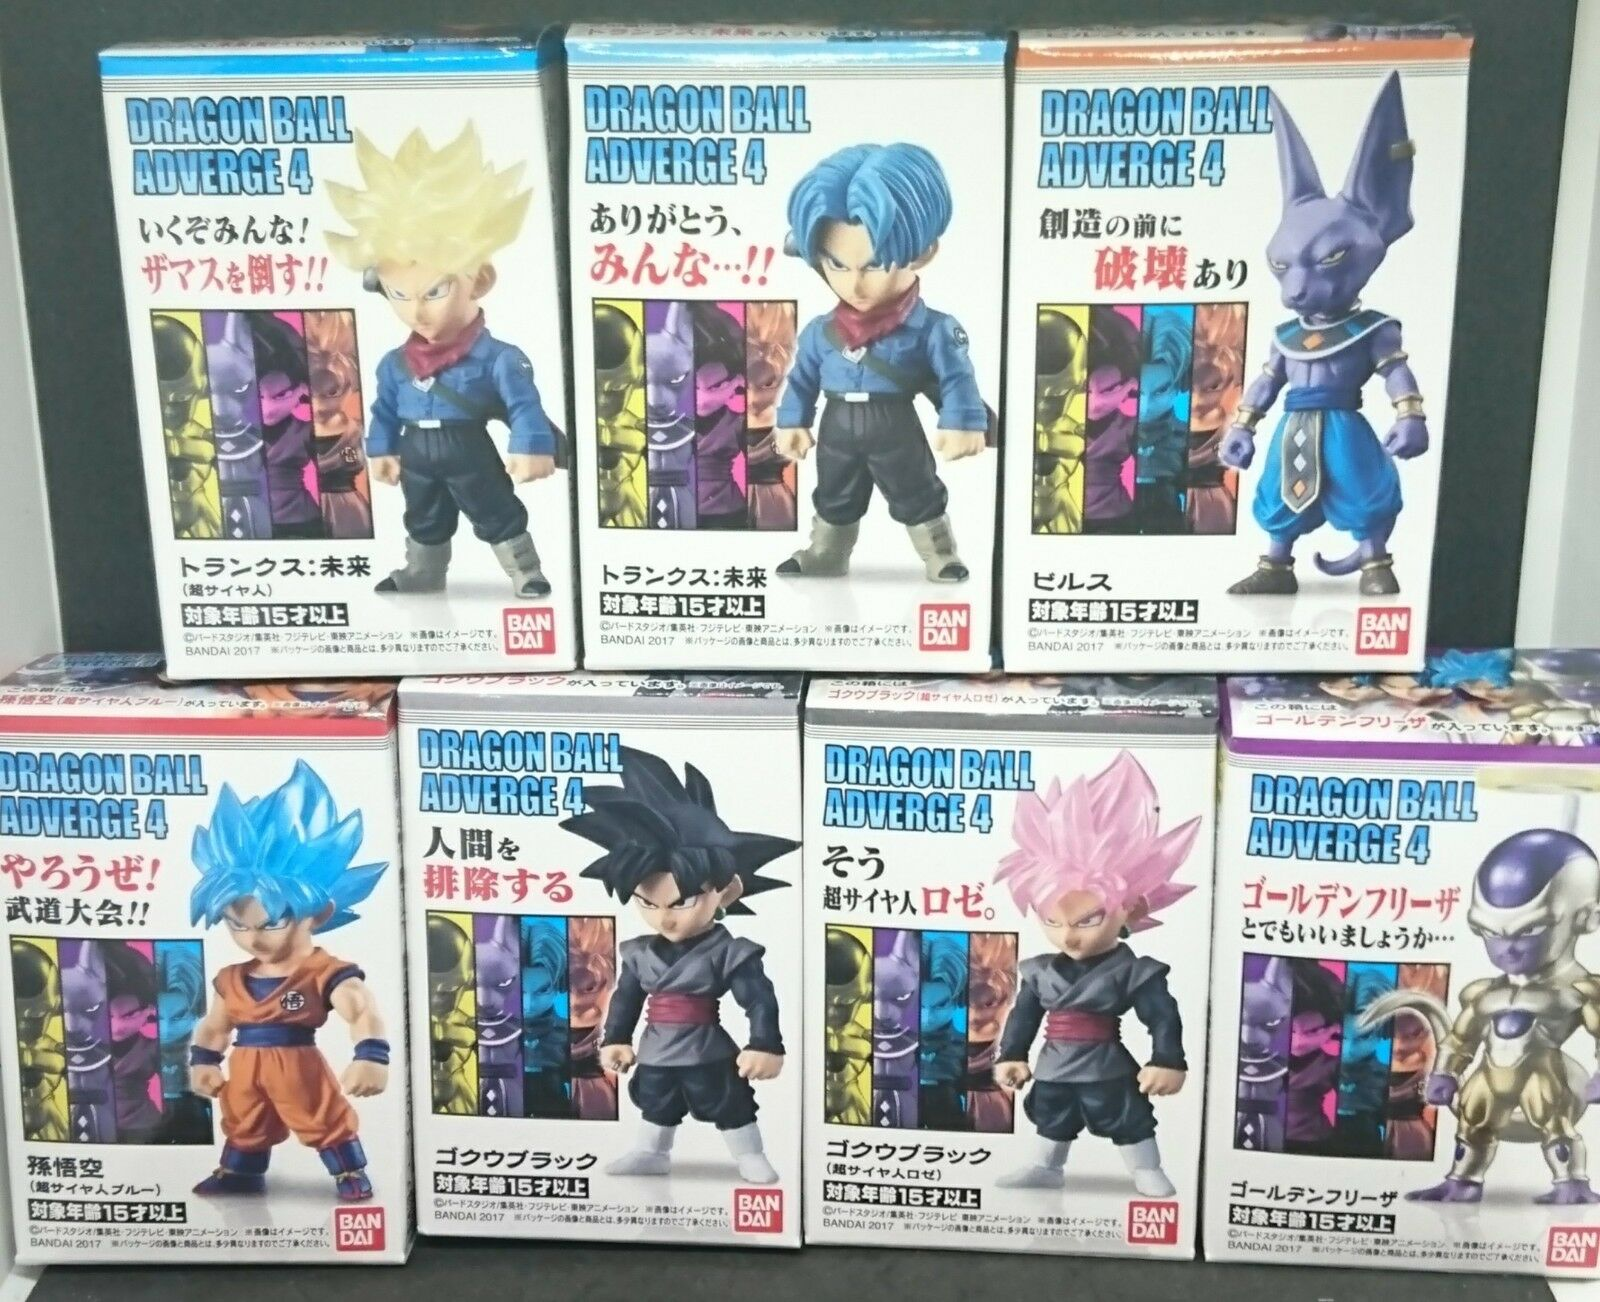 BANDAI DRAGON BALL Z Super ADVERGE 4 Mini Figure All 7 sets NEW F/S Japan import